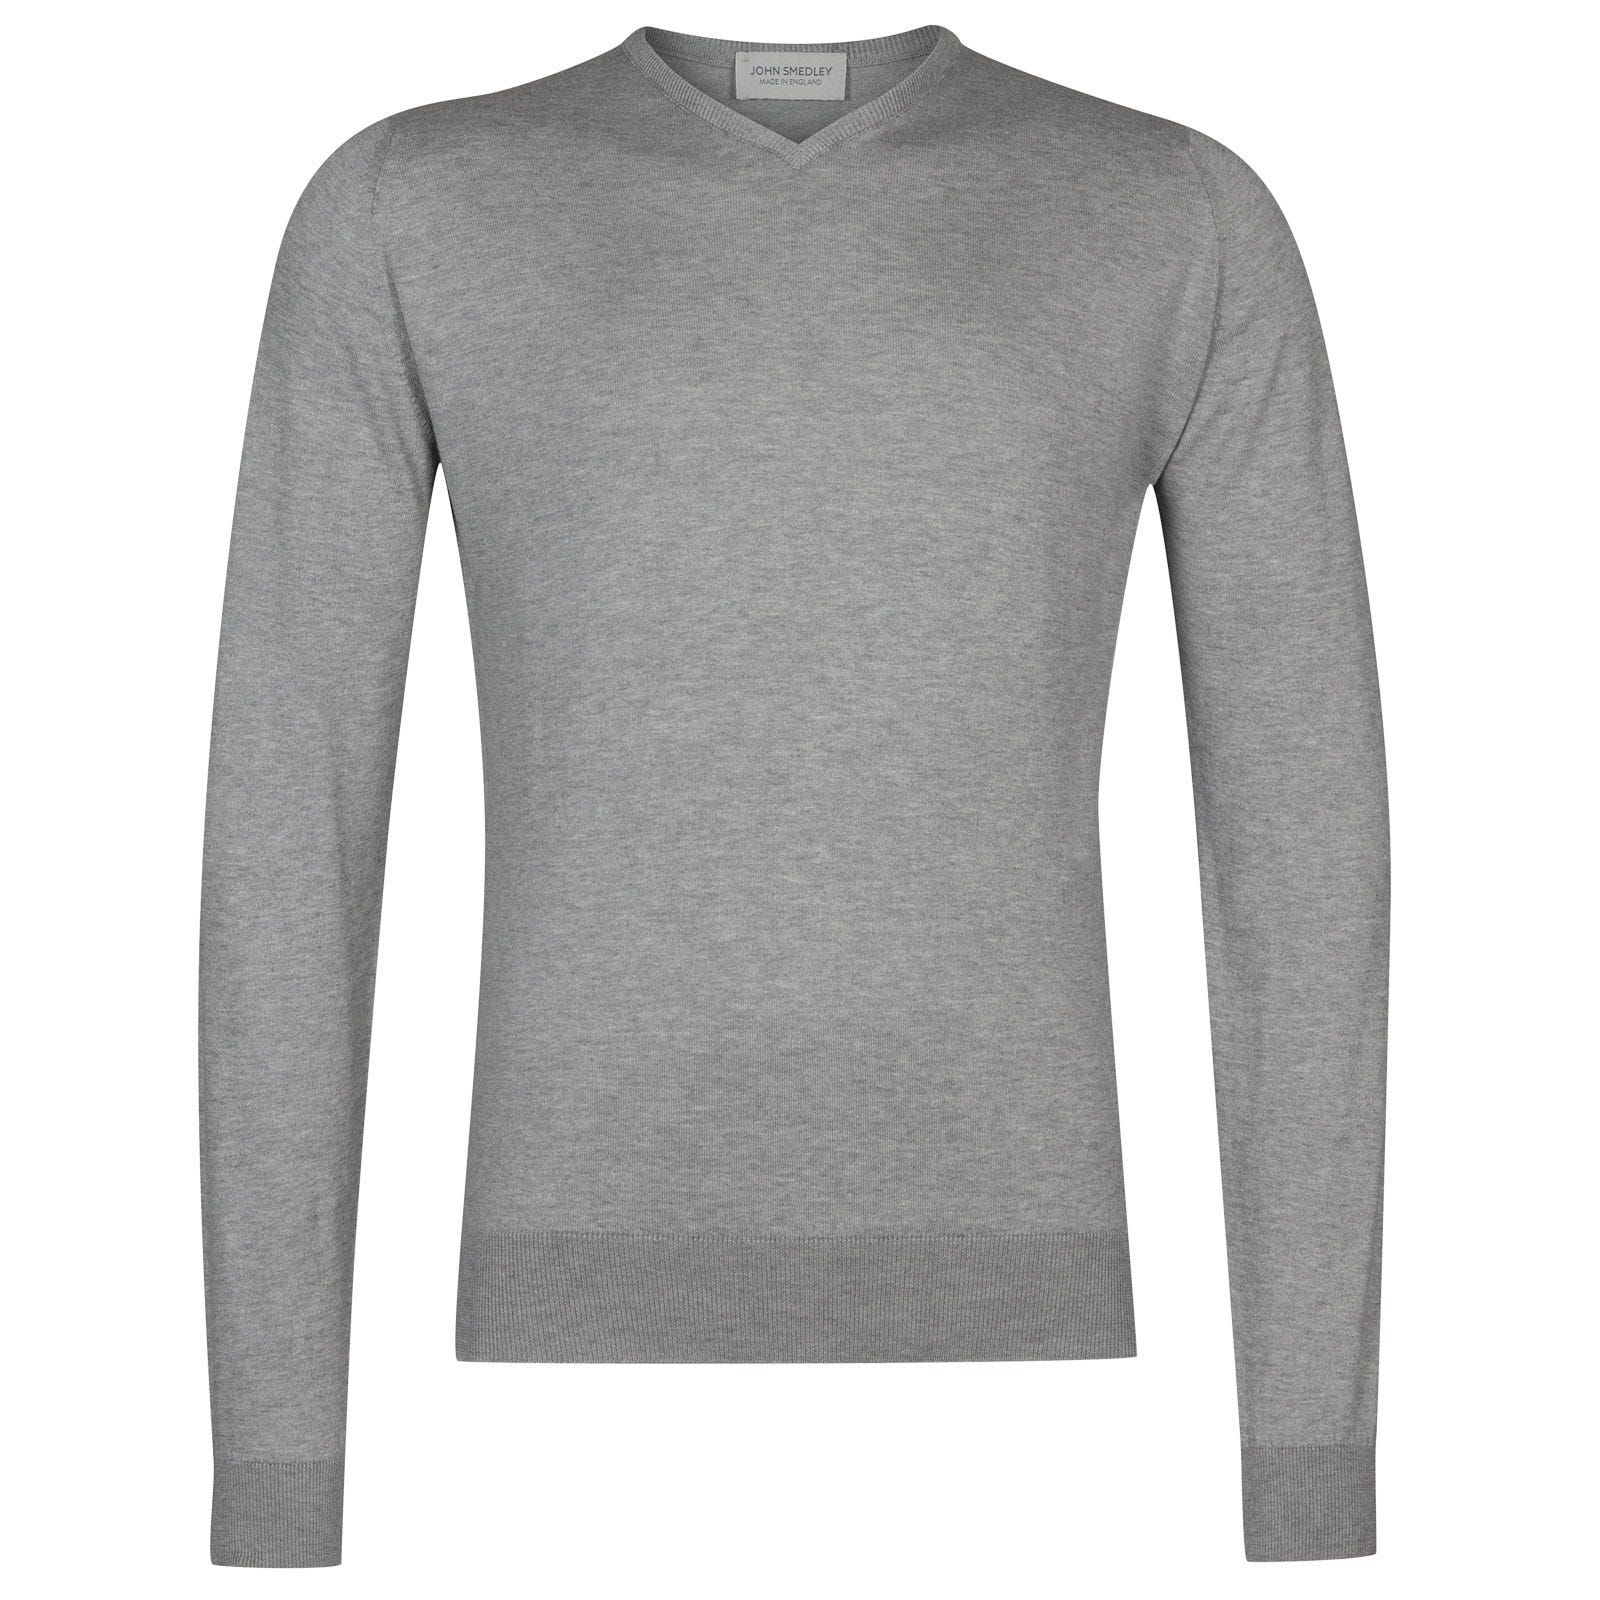 John Smedley Aydon Sea Island Cotton Pullover in Silver-XL